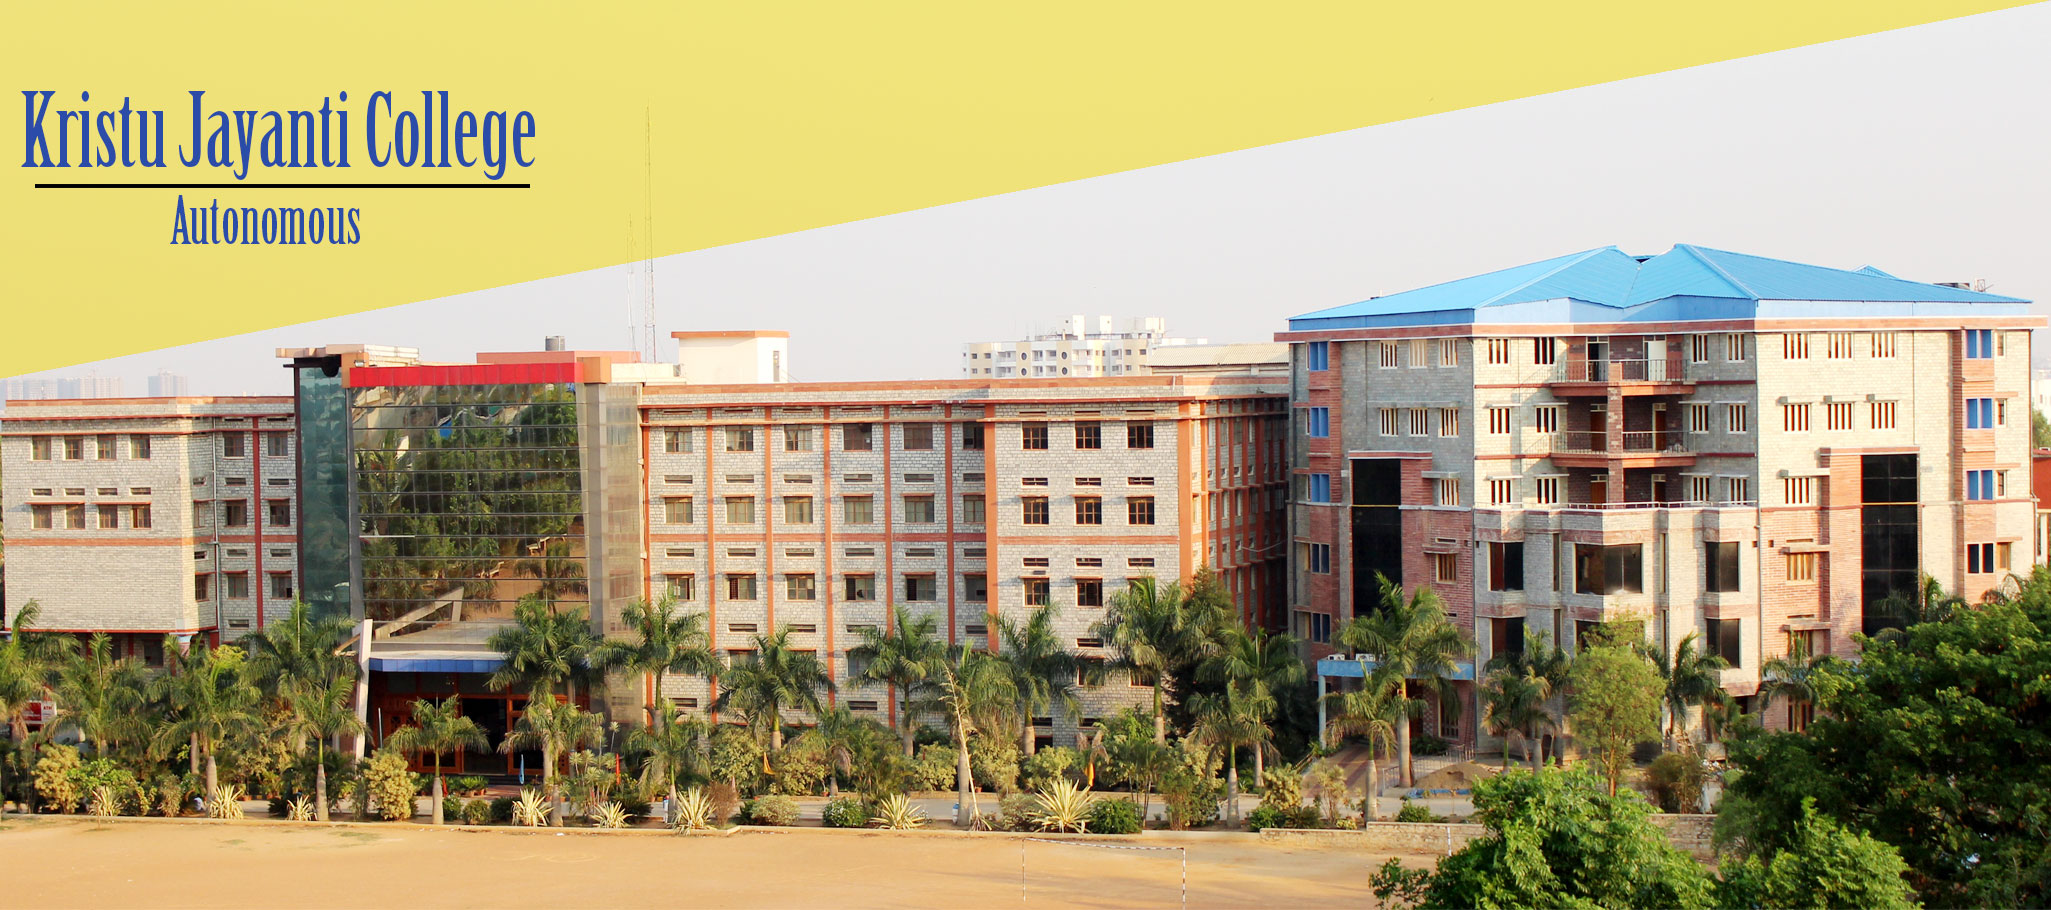 CFP: Conference on Role of Educational Institutions in Sectoral Equilibrium @ Kristu Jayanti College [Bangalore, Jan 18-19]: Submit by Dec 28: Expired